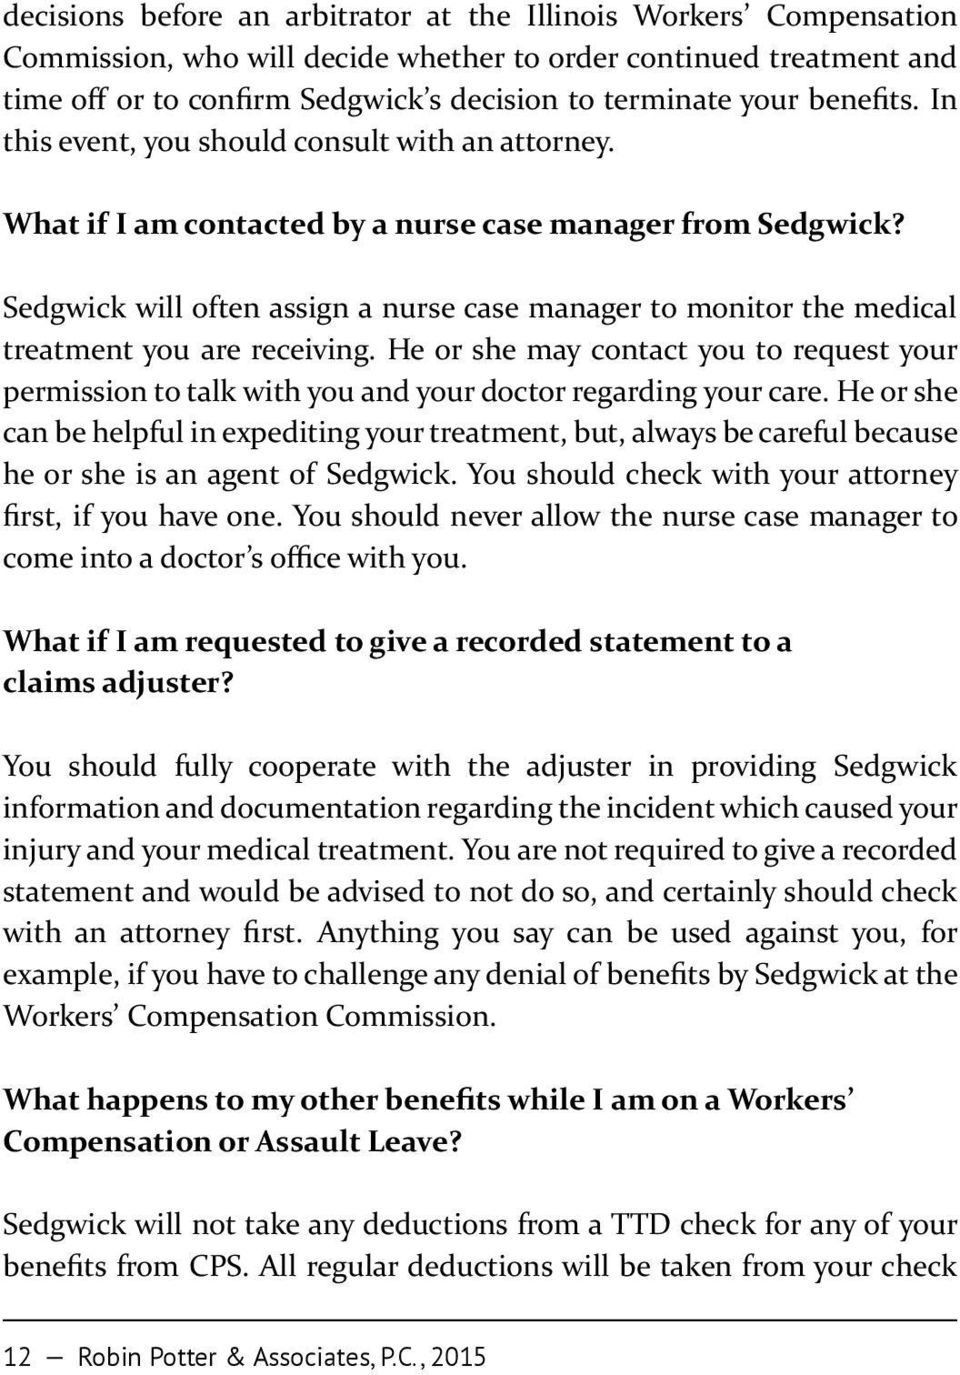 Sedgwick will often assign a nurse case manager to monitor the medical treatment you are receiving.